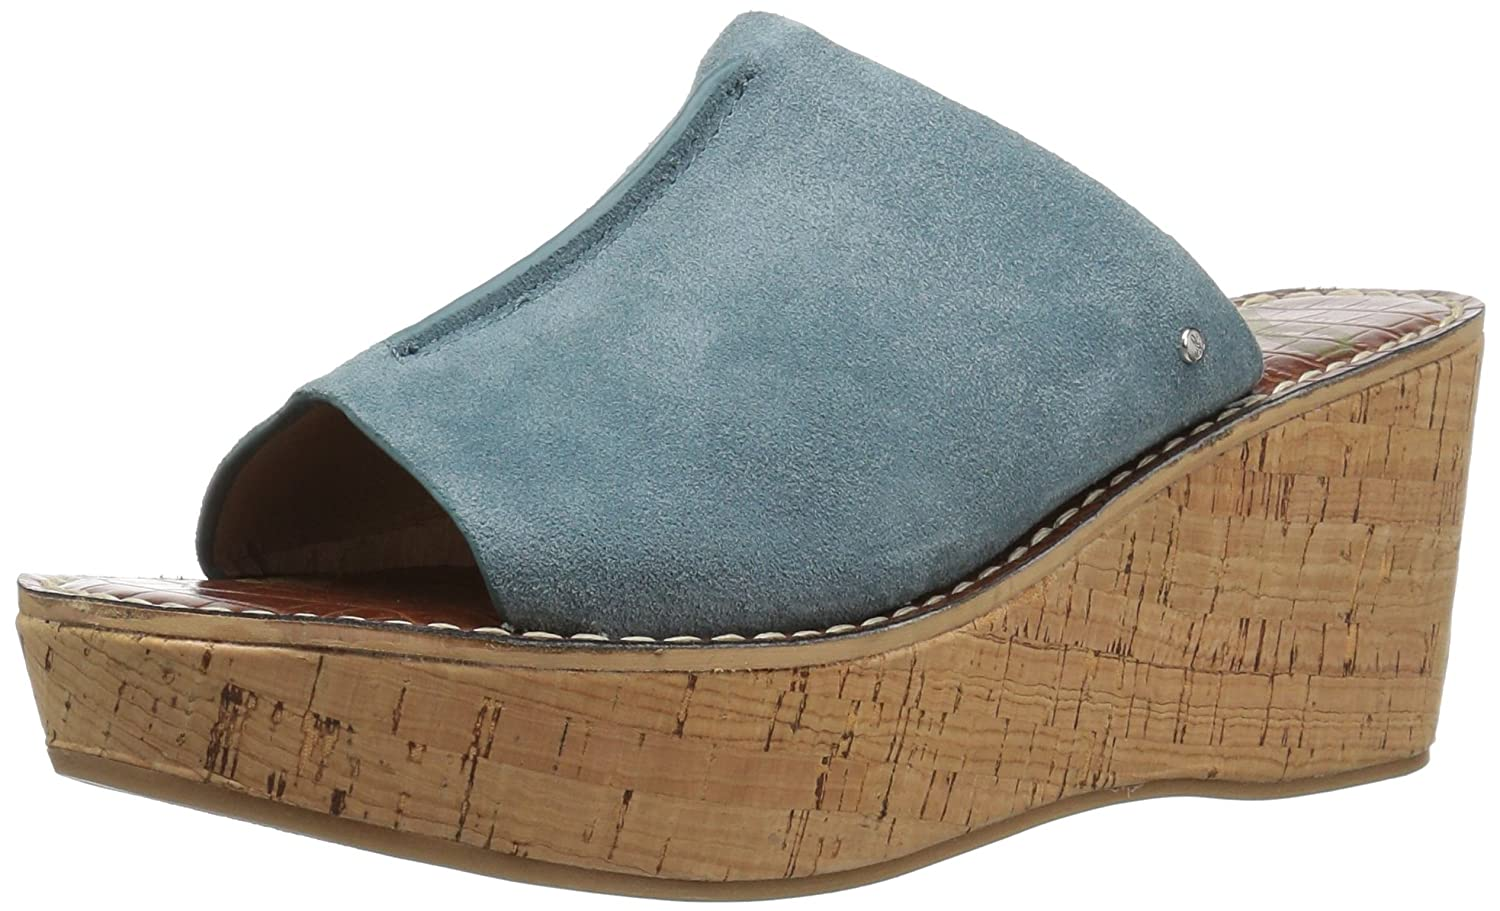 bluee shadow suede Sam Edelman Women's Ranger Wedge Sandal